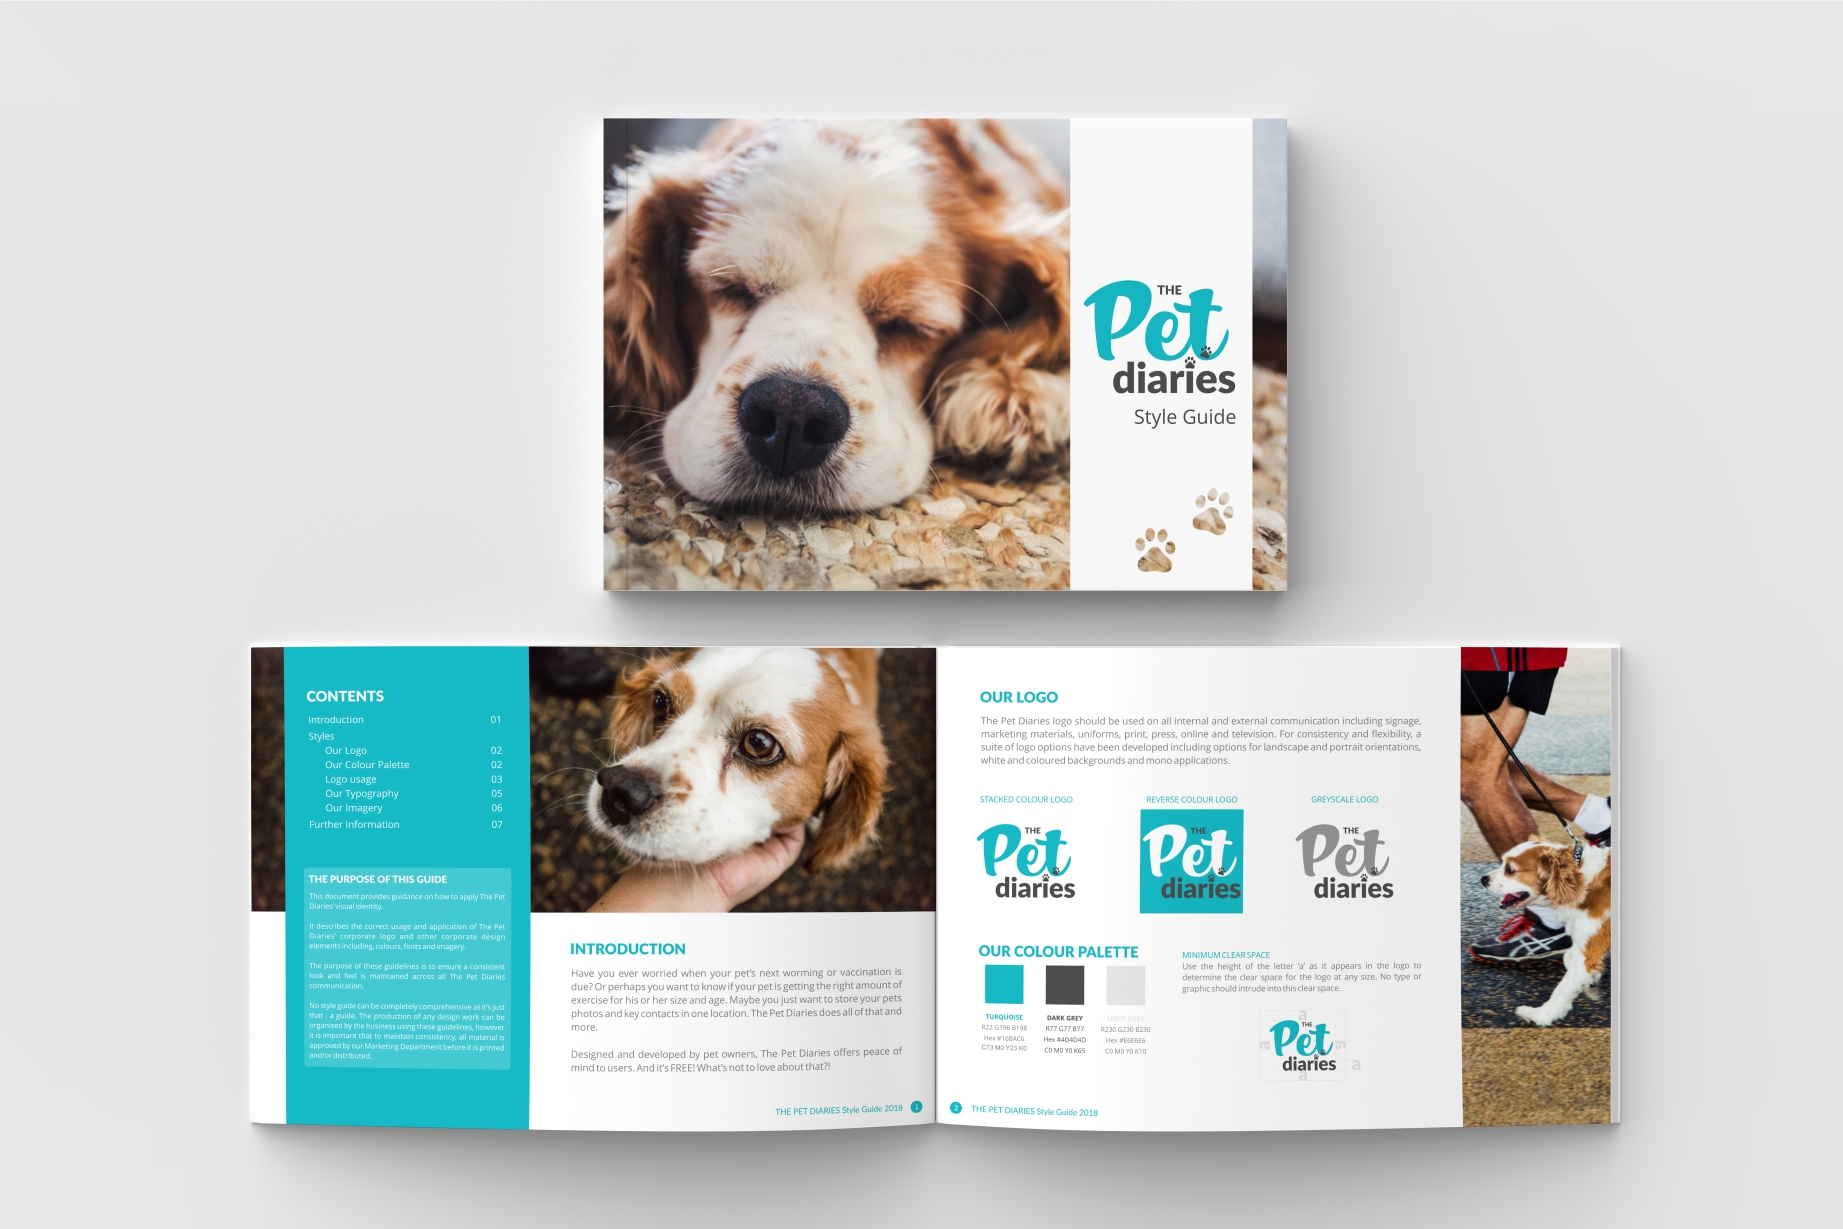 Style guide - The Pet Diaries